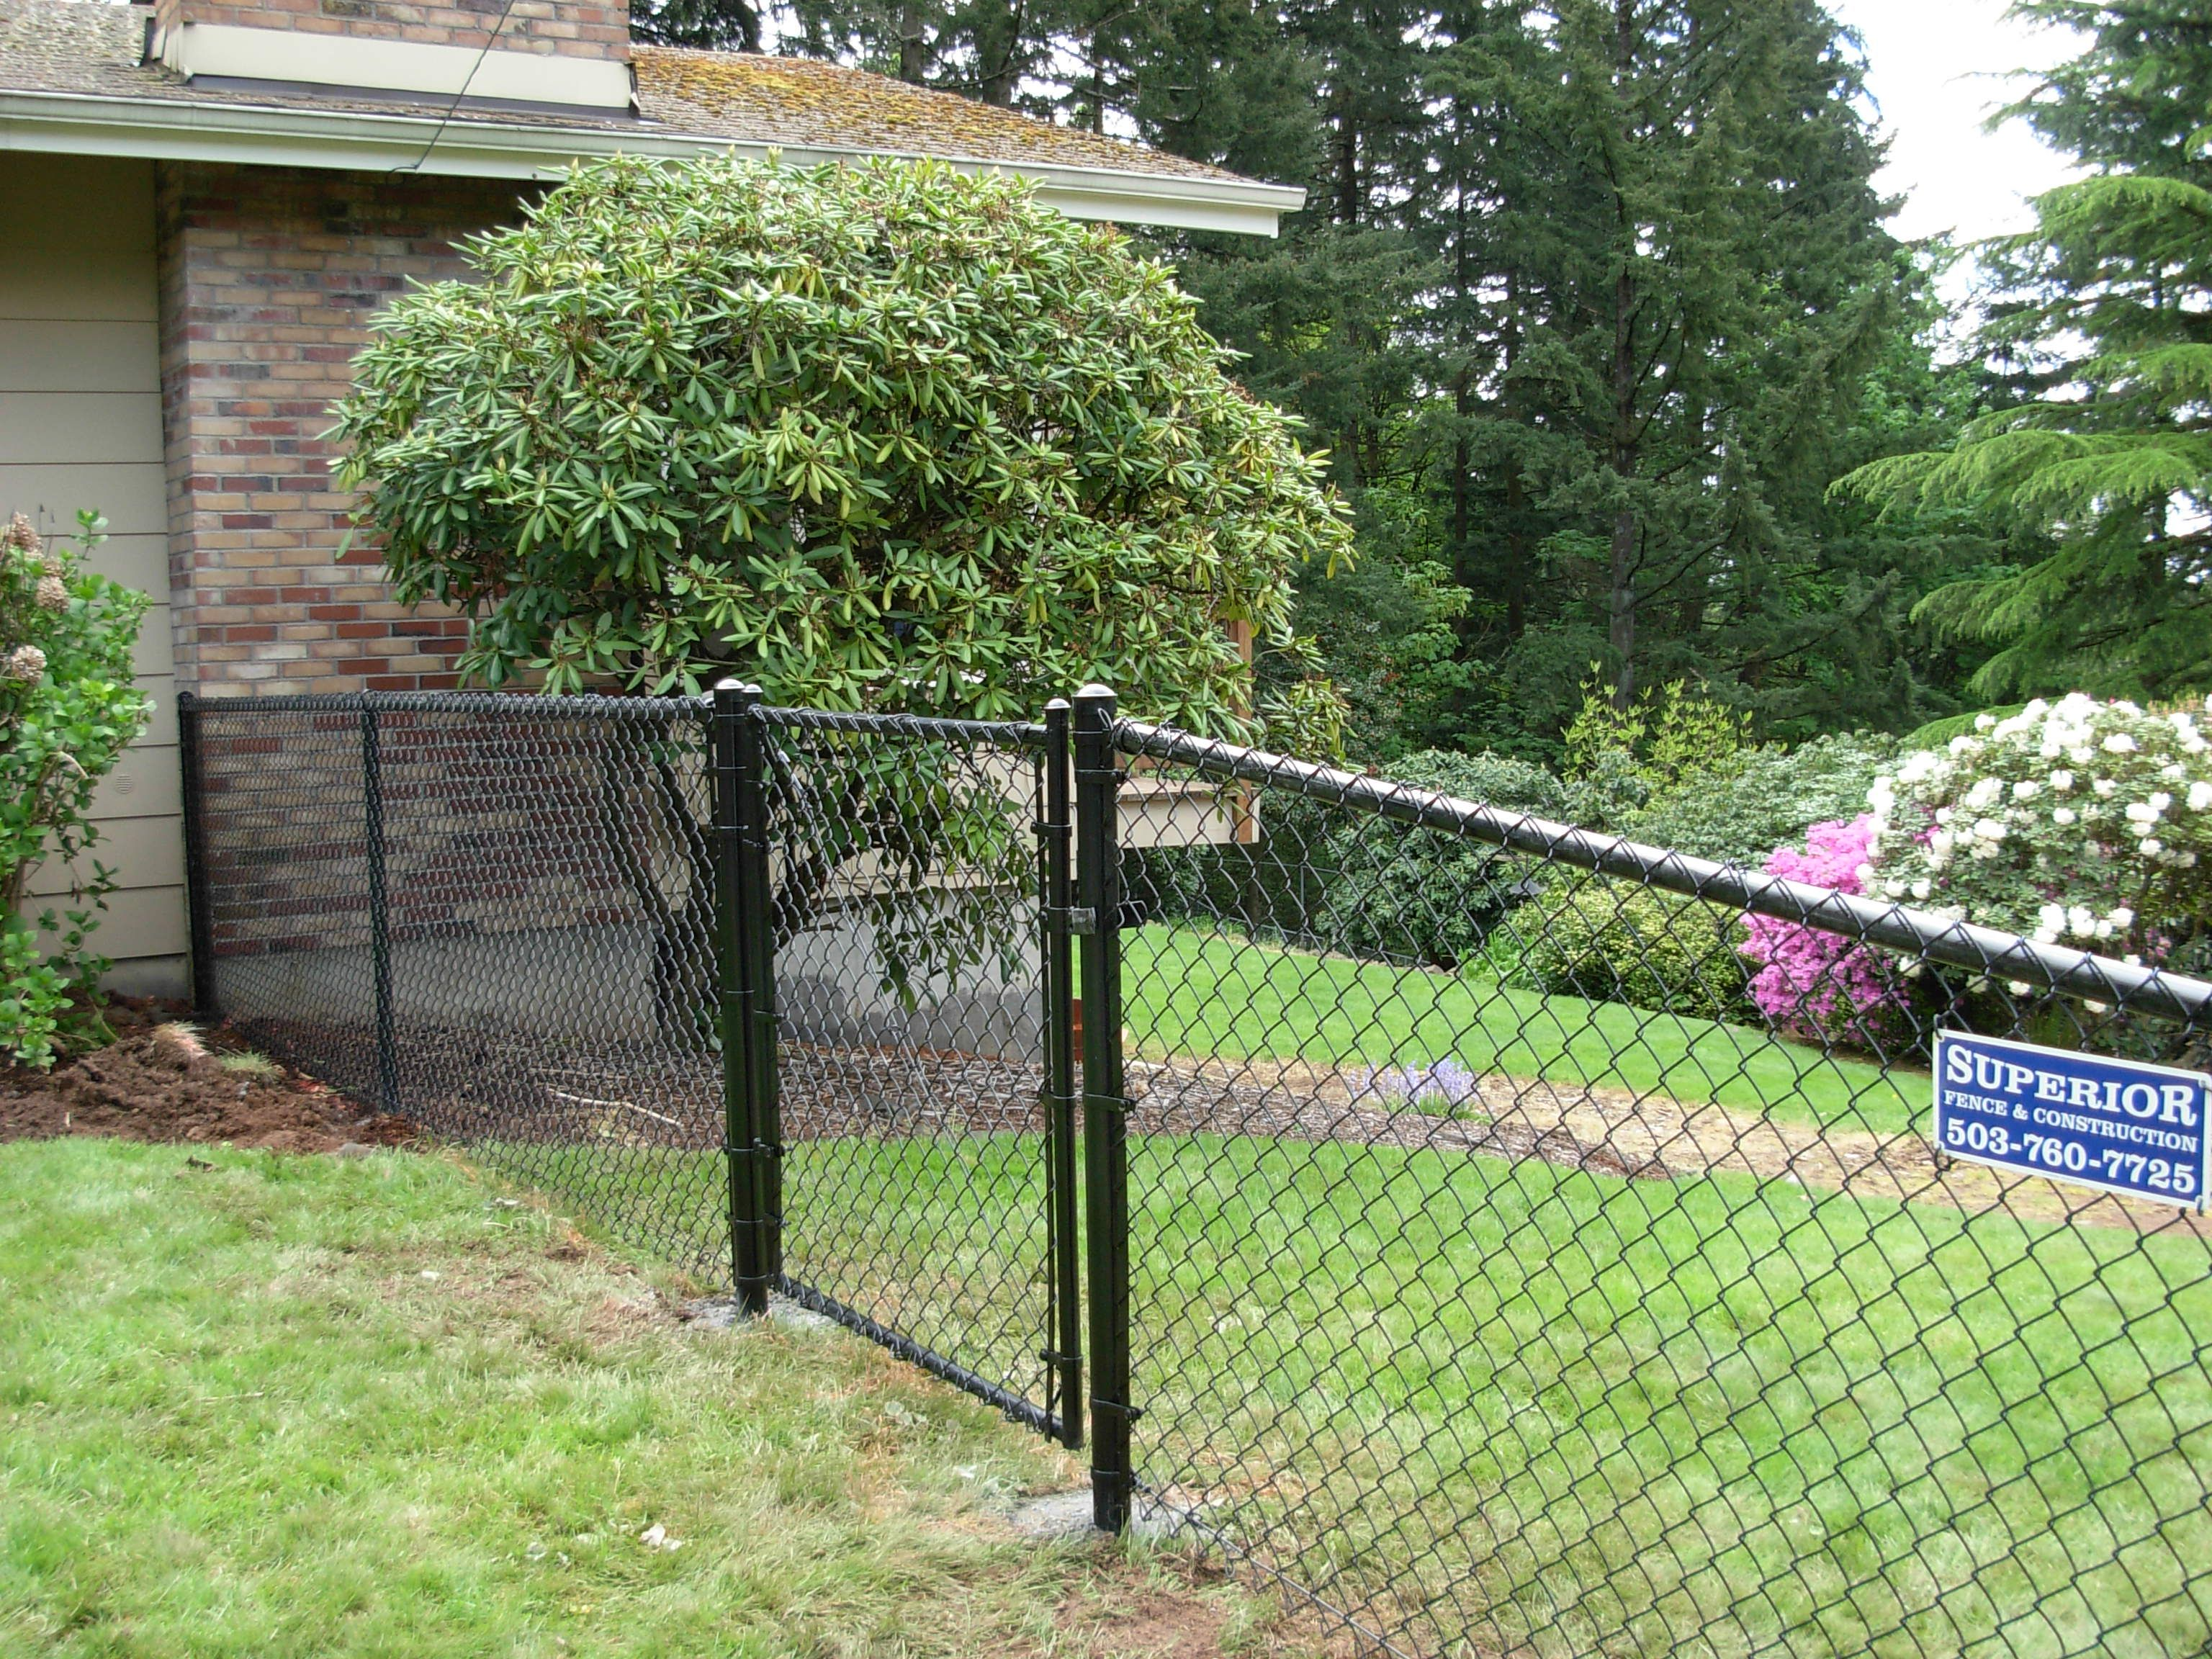 Black chain link fence with gate 503 760 7725